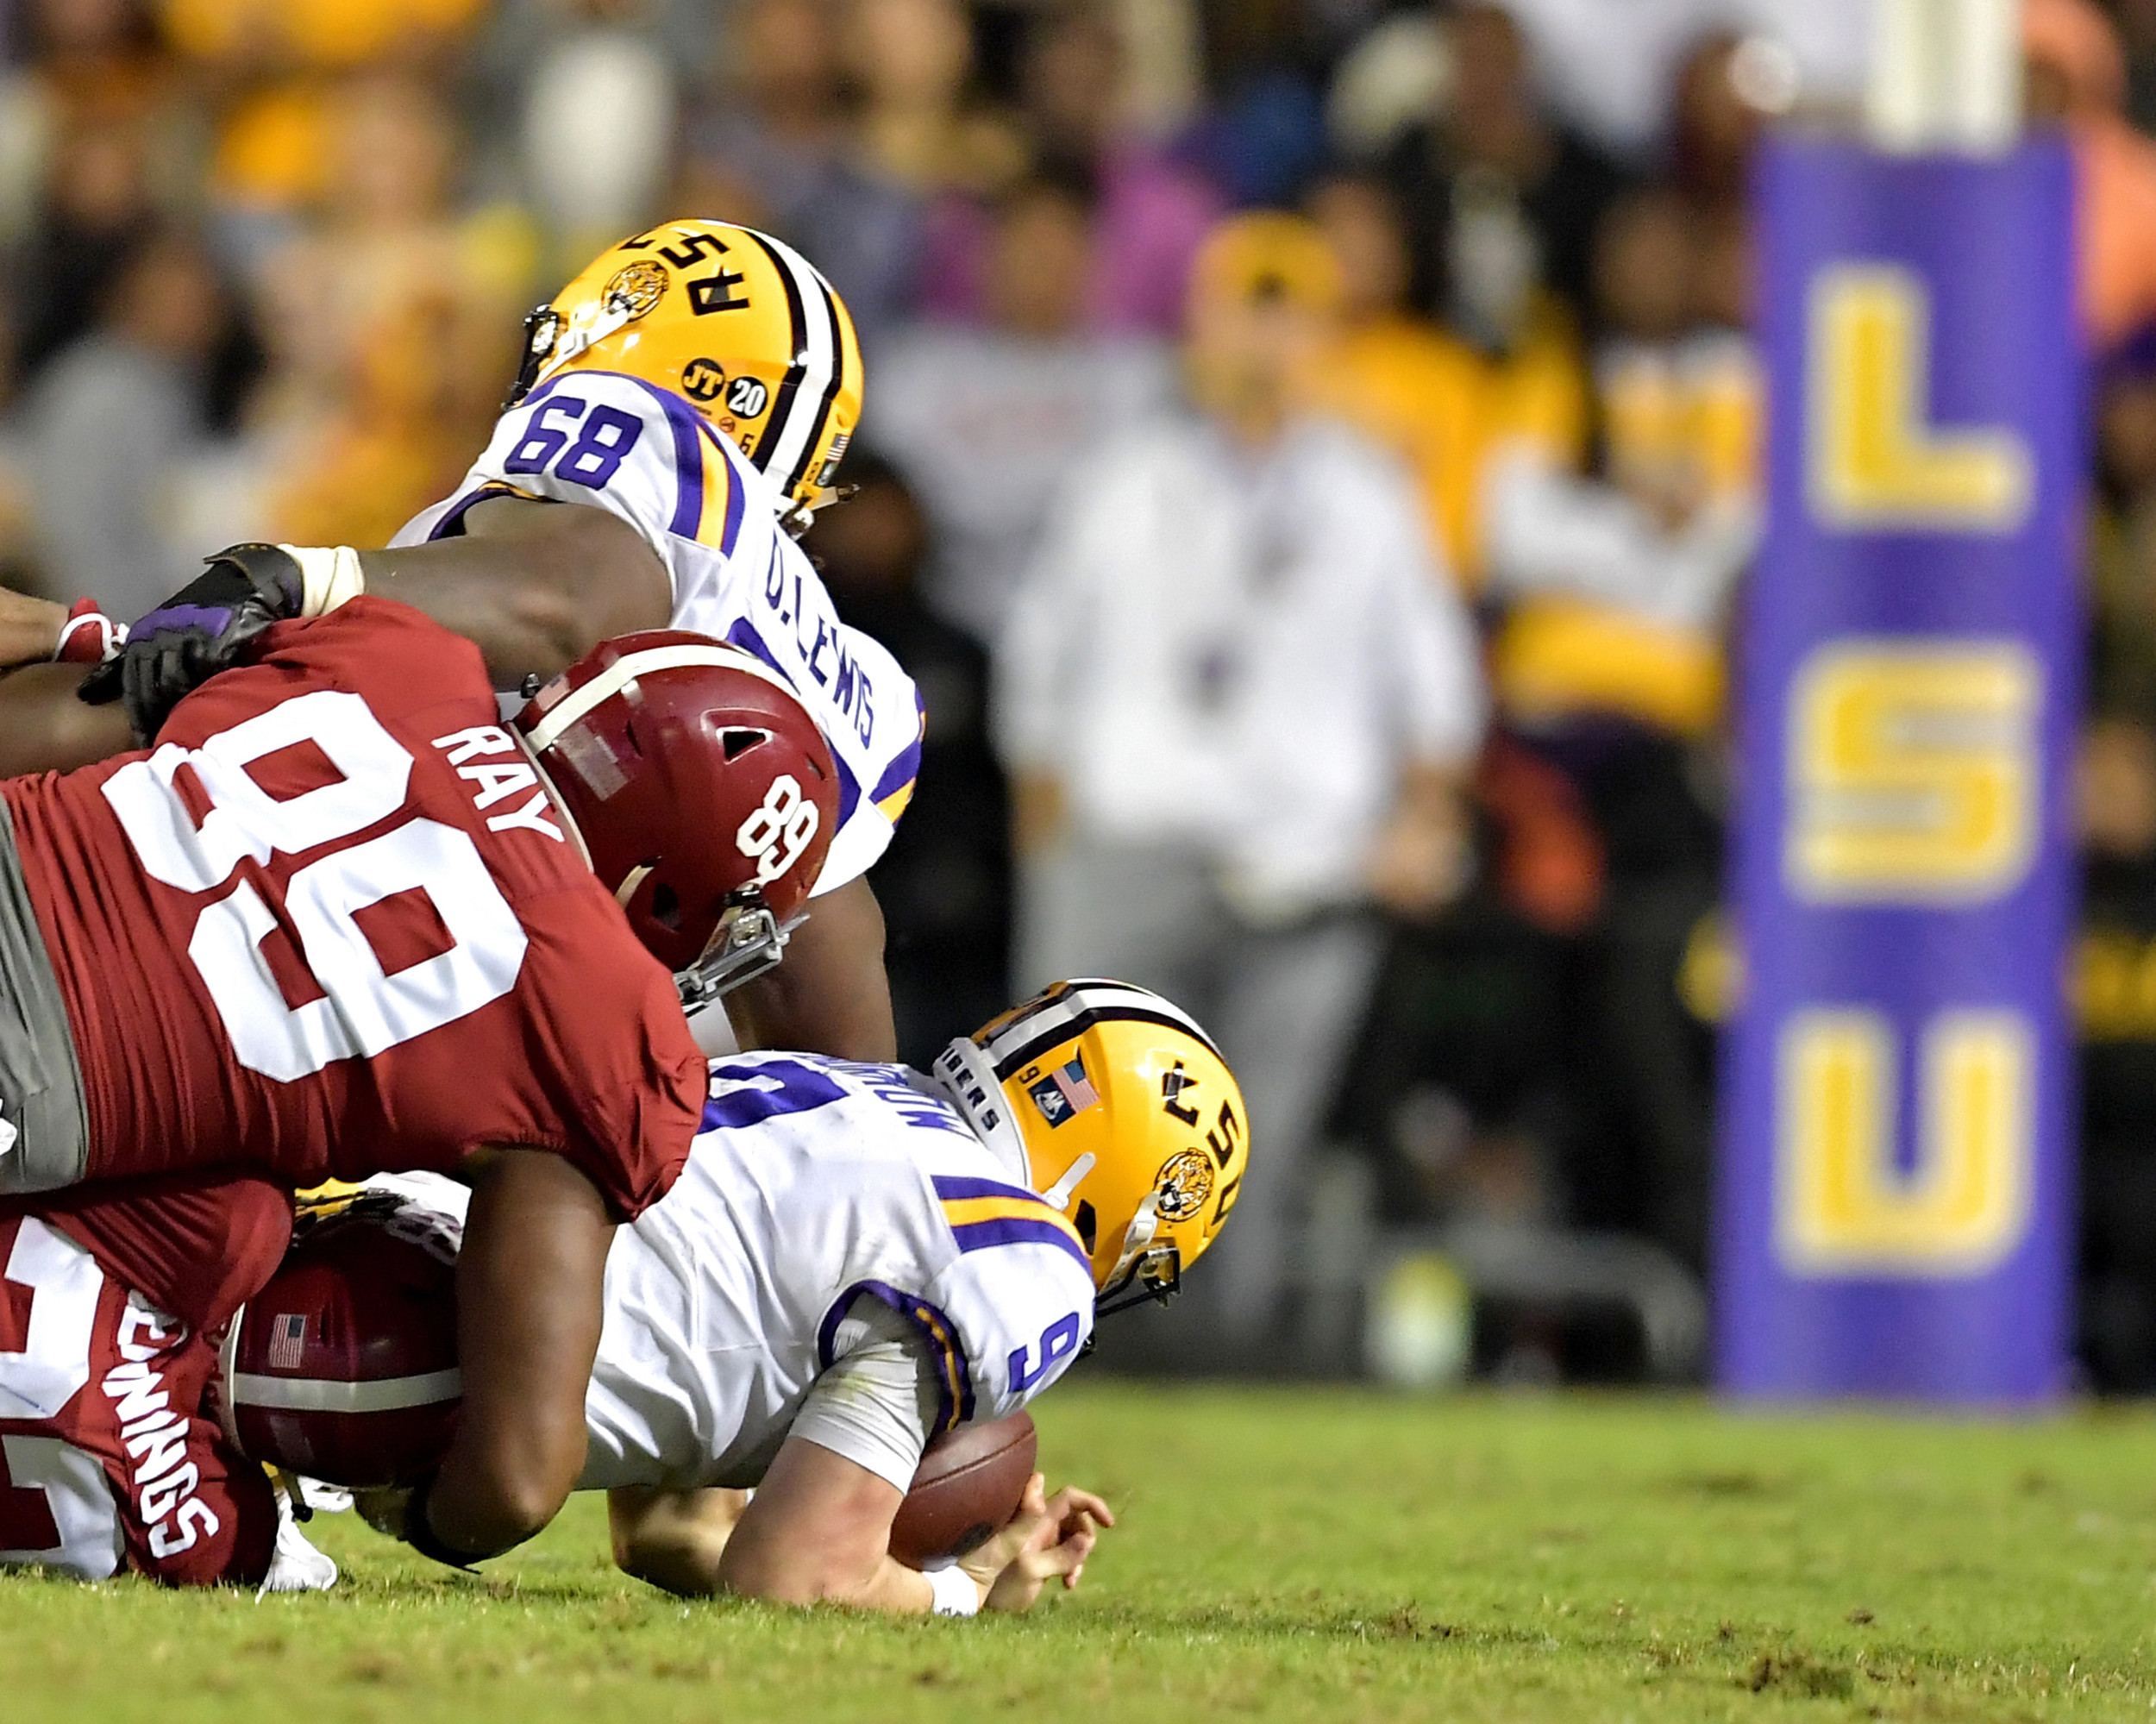 LSU Tigers quarterback Joe Burrow (9) is sacked yet again by Alabama Crimson Tide defensive linemen LaBryan Ray (89) and Raekwon Davis (99), and linebacker Anfernee Jennings (33), in the second half of an NCAA football game Saturday, November 3, 2018, at Tiger Stadium in Baton Rouge, La. (Photo by Lee Walls)